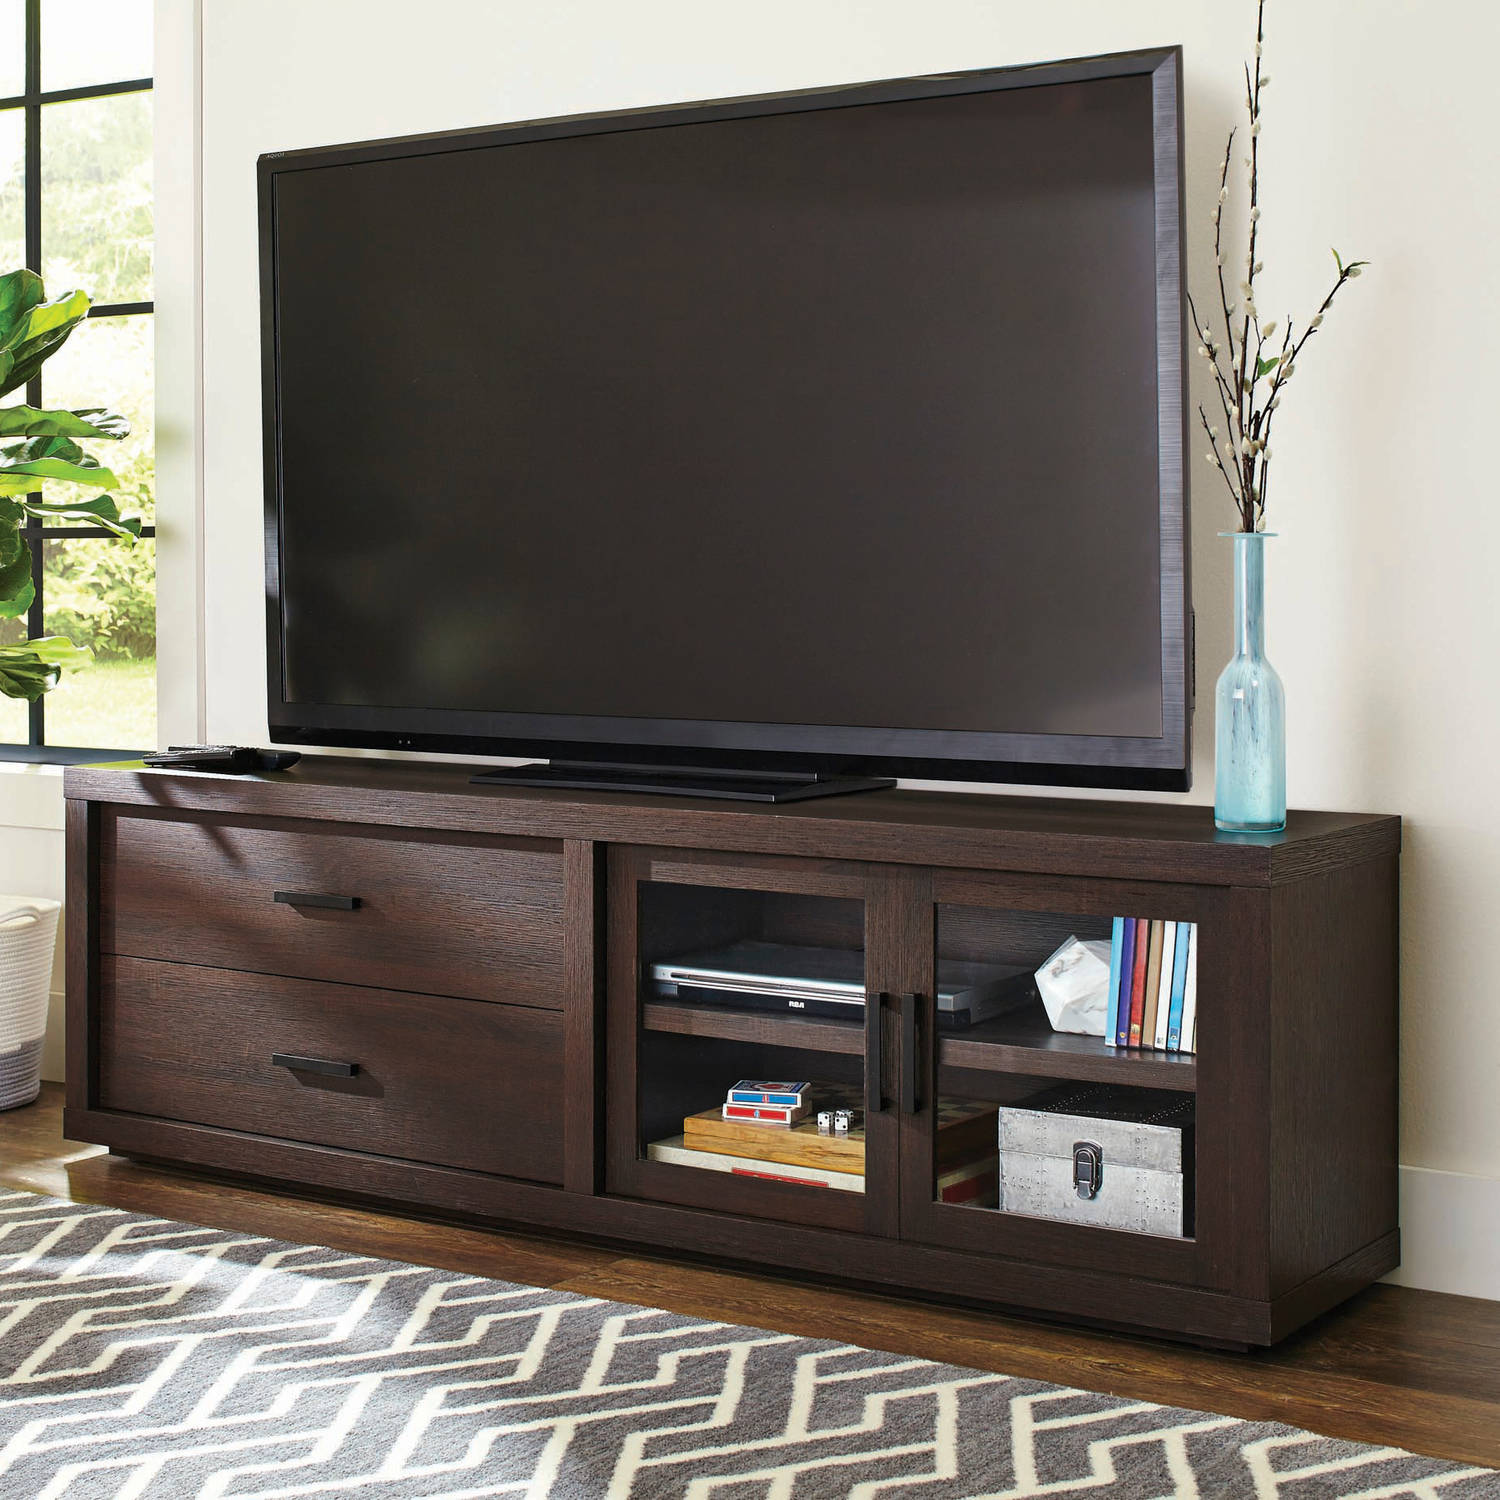 Beau TV Stands U0026 Entertainment Centers   Walmart.com